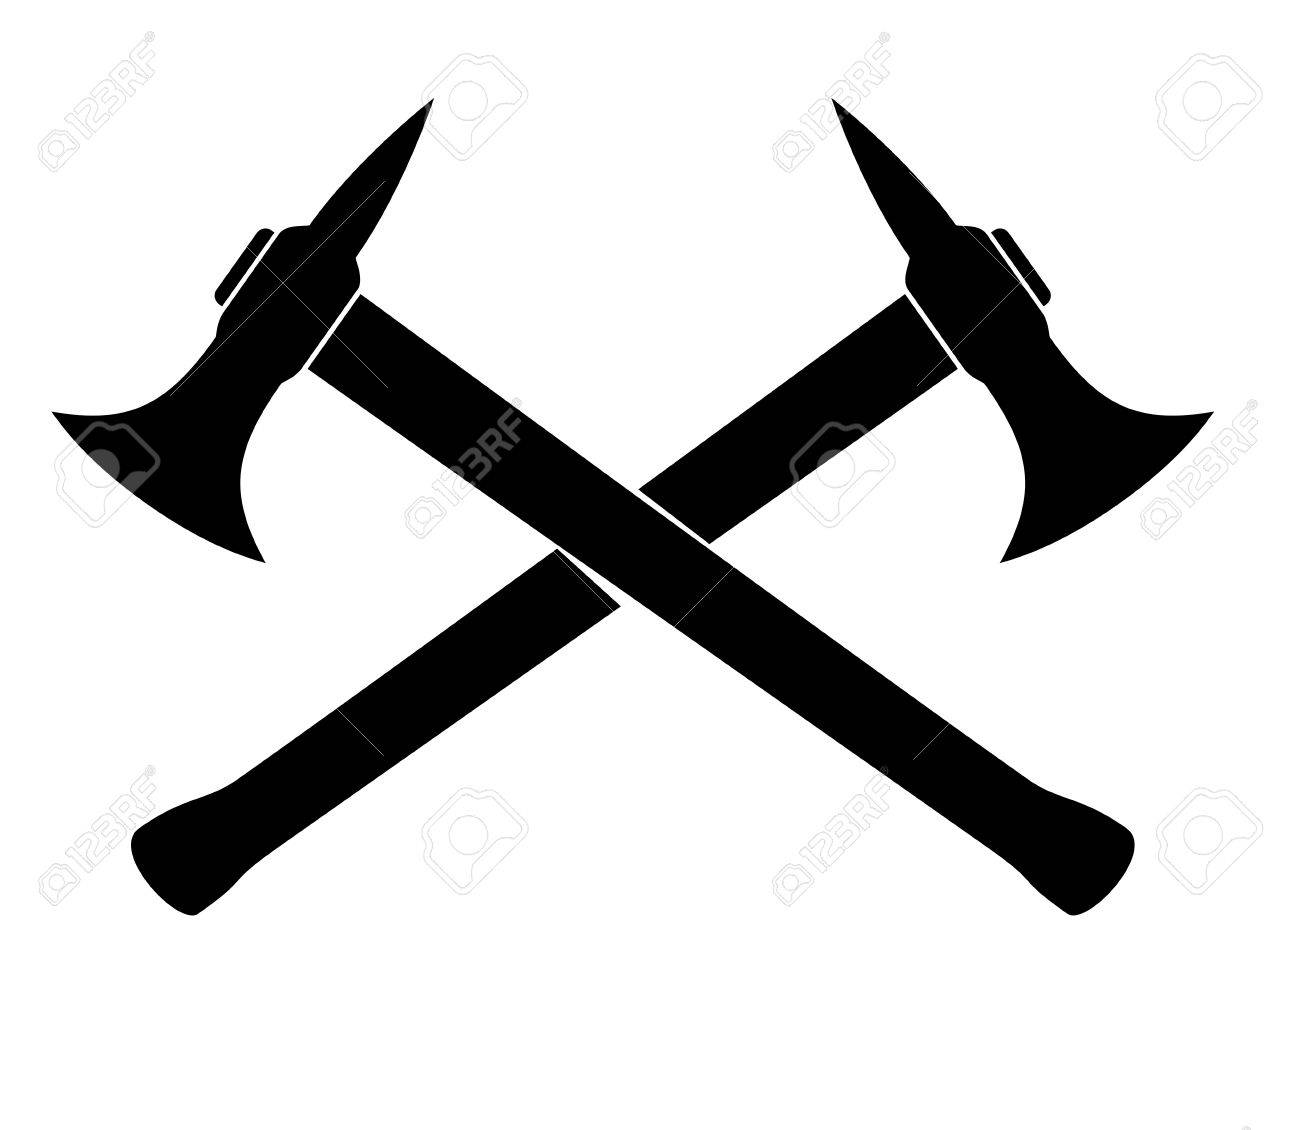 Silhouette of two crossed Axes. vector illustration.